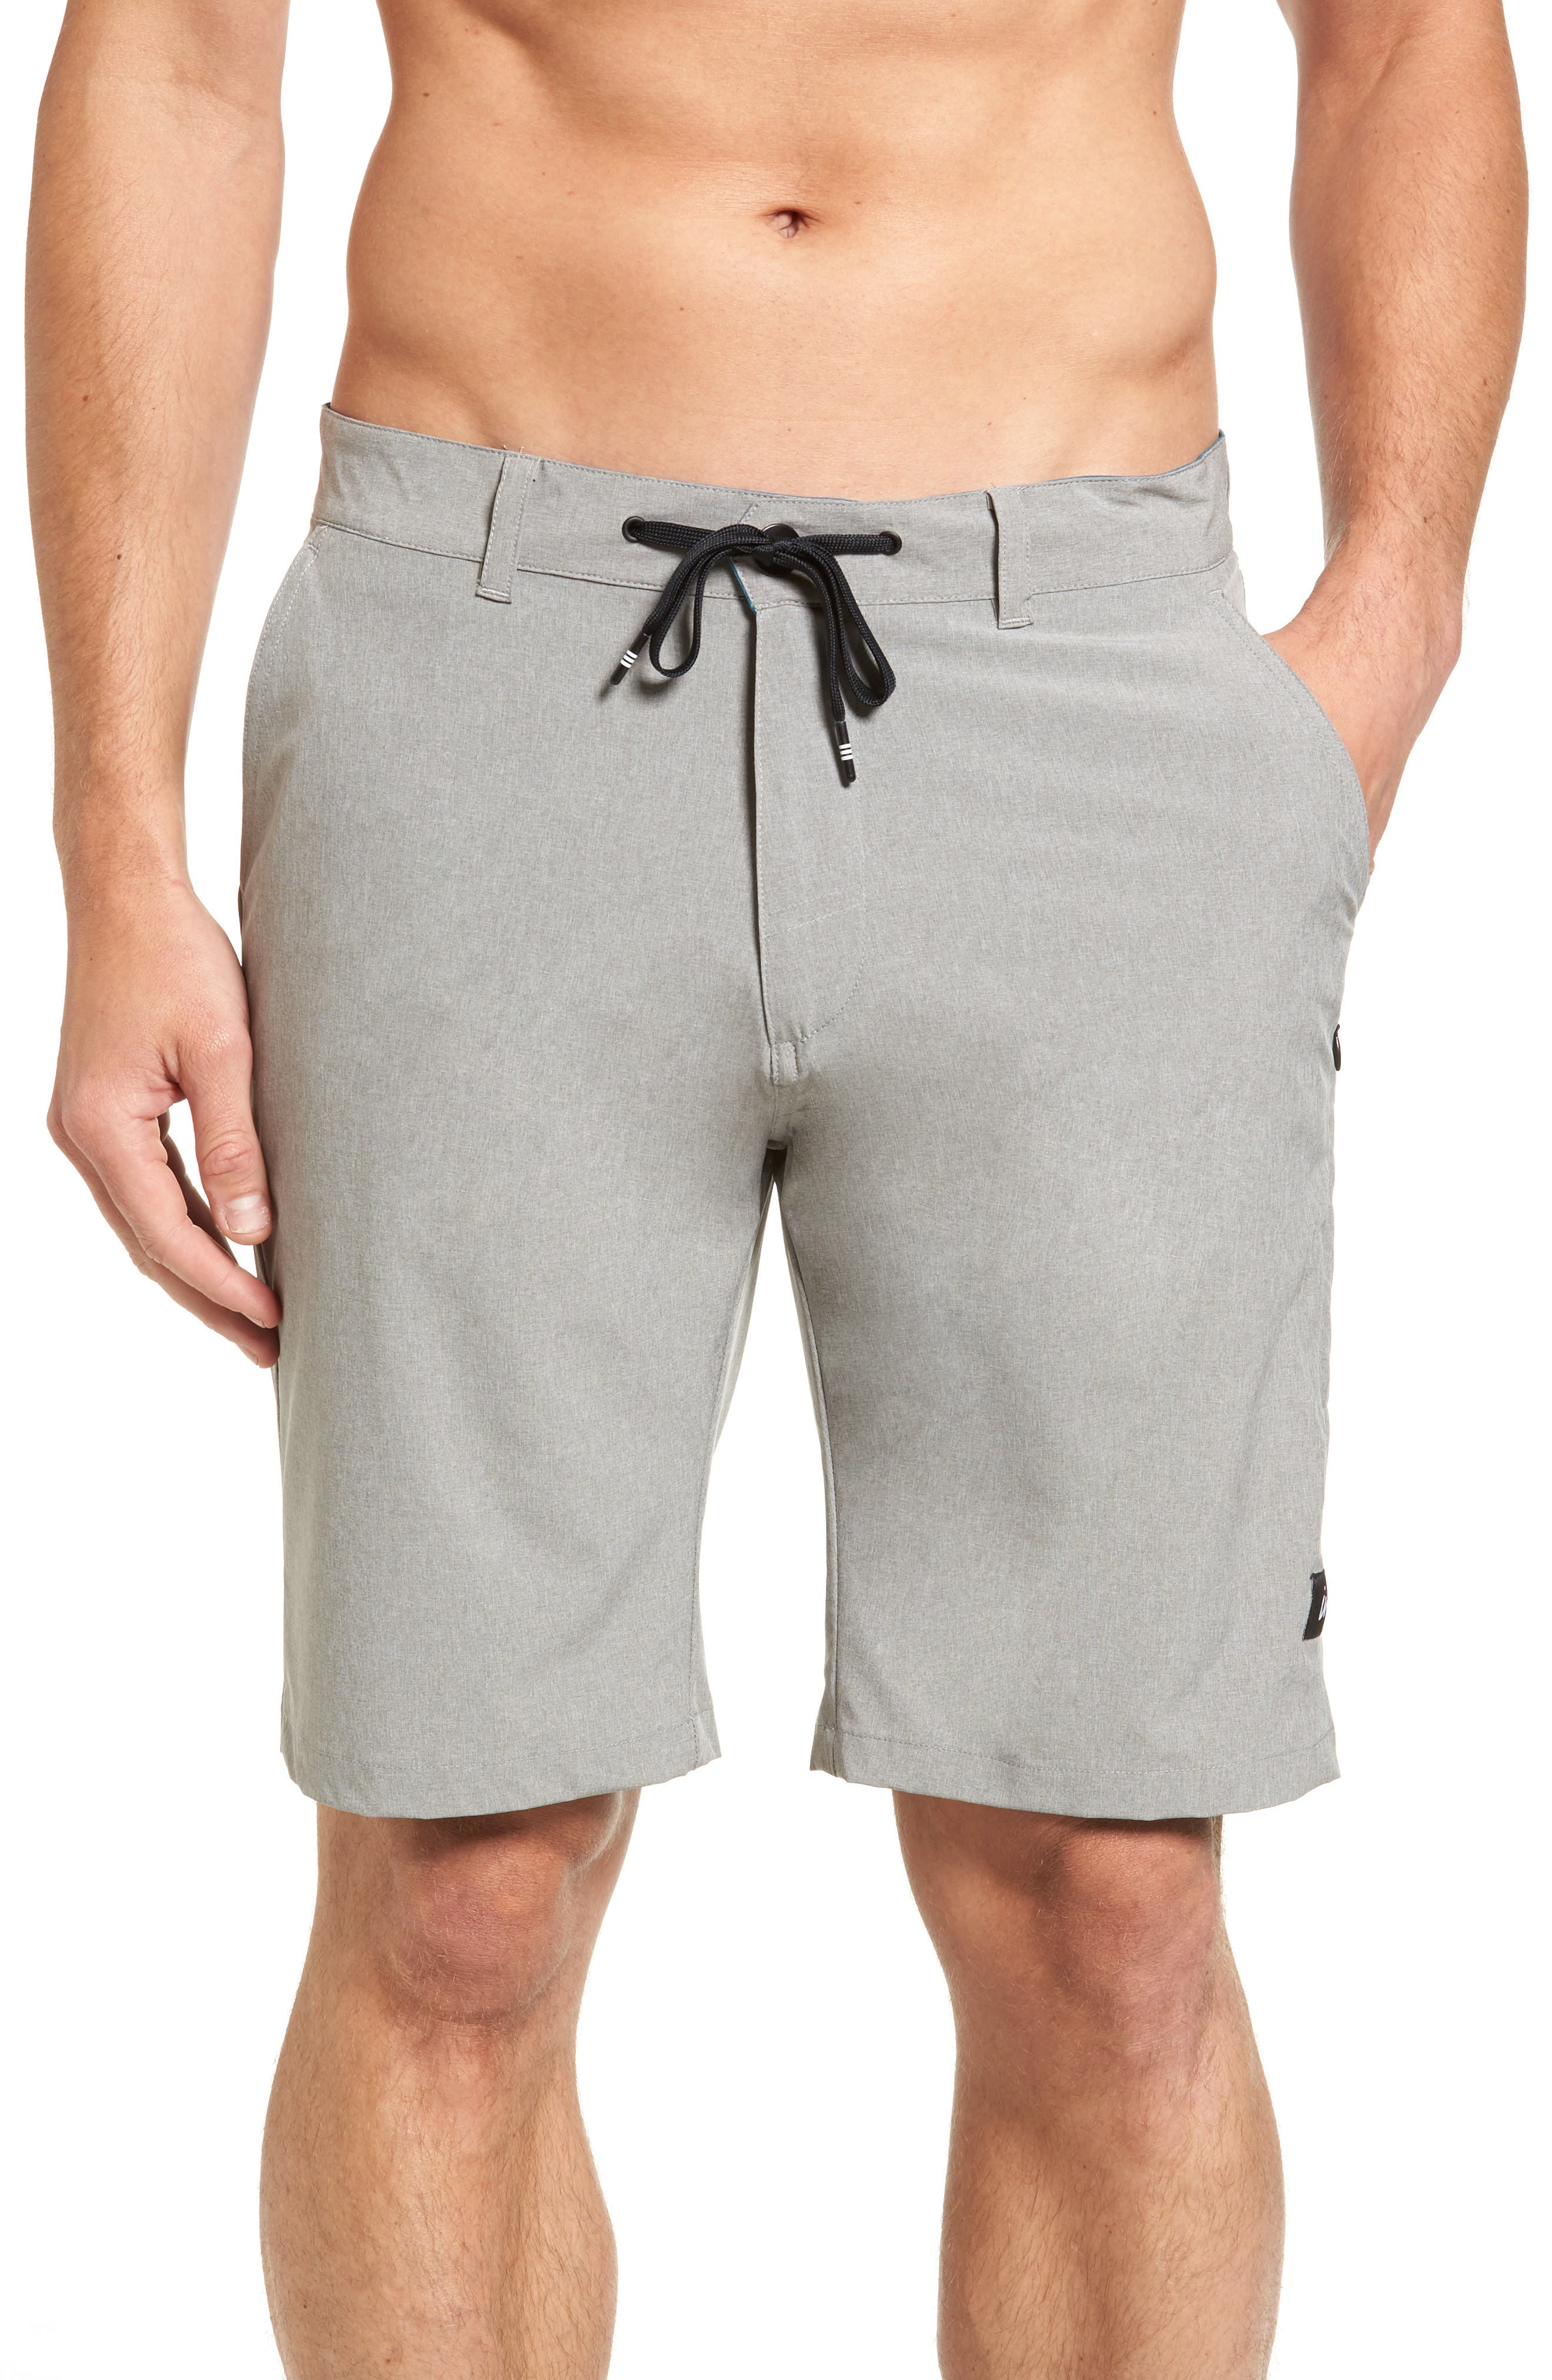 Freedom Carbon Cruiser Shorts,                             Alternate thumbnail 4, color,